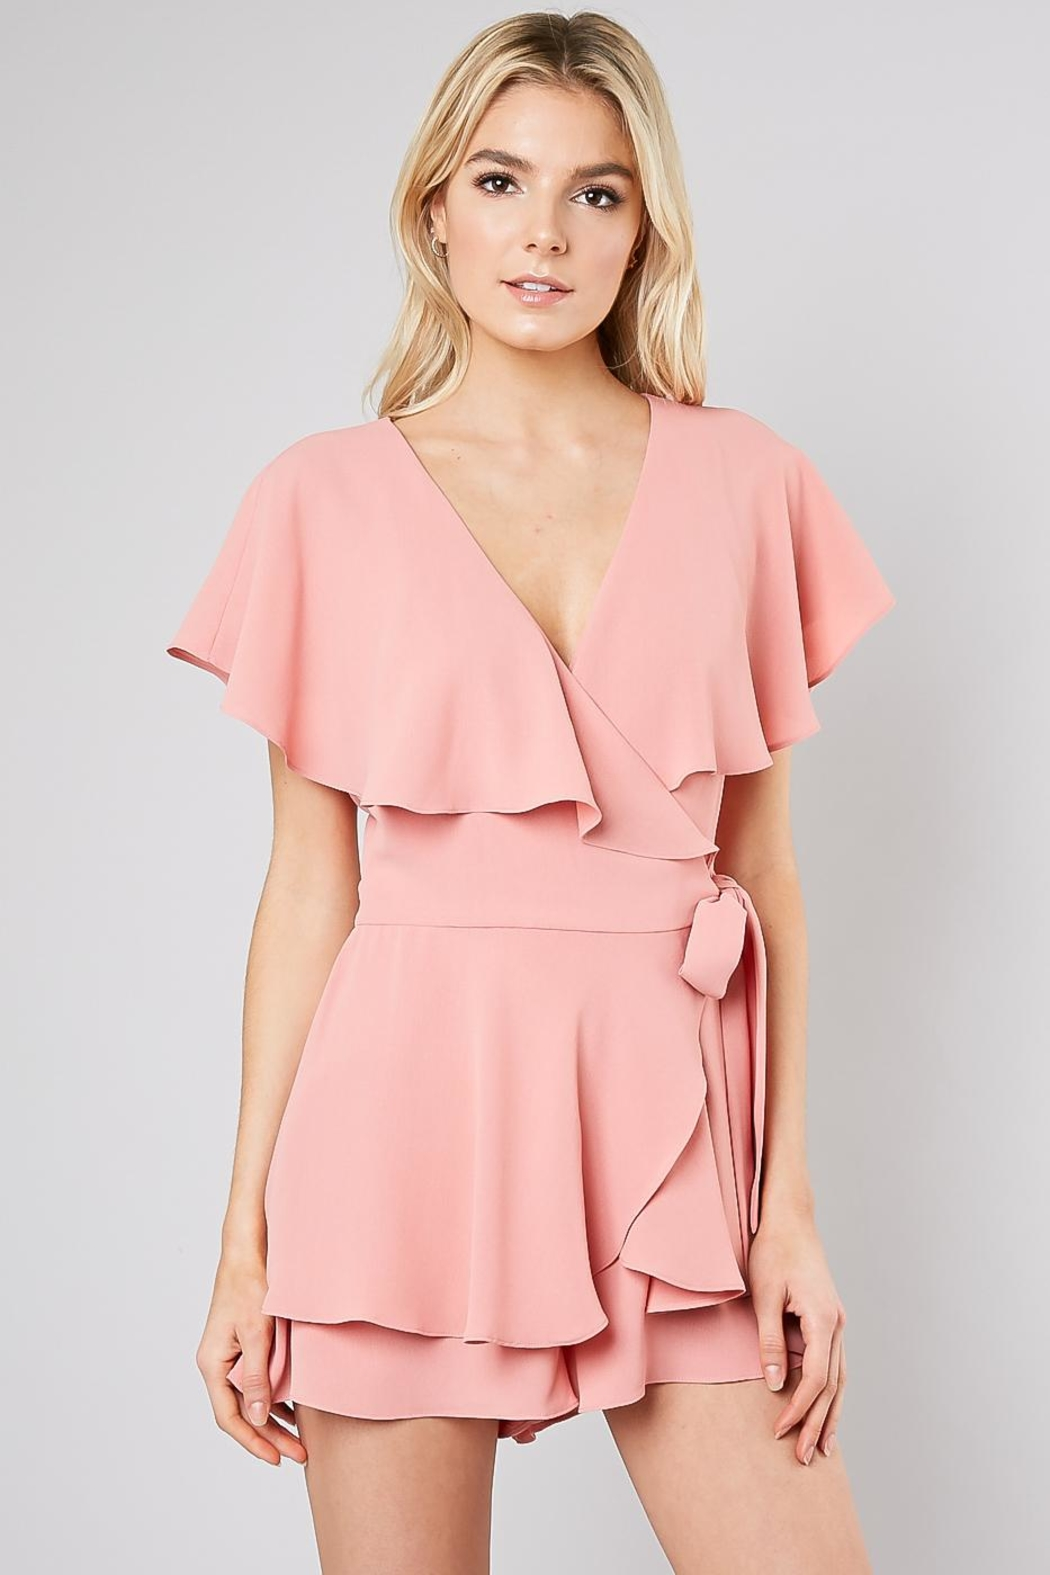 Do & Be Pink Wrap Playsuit - Main Image